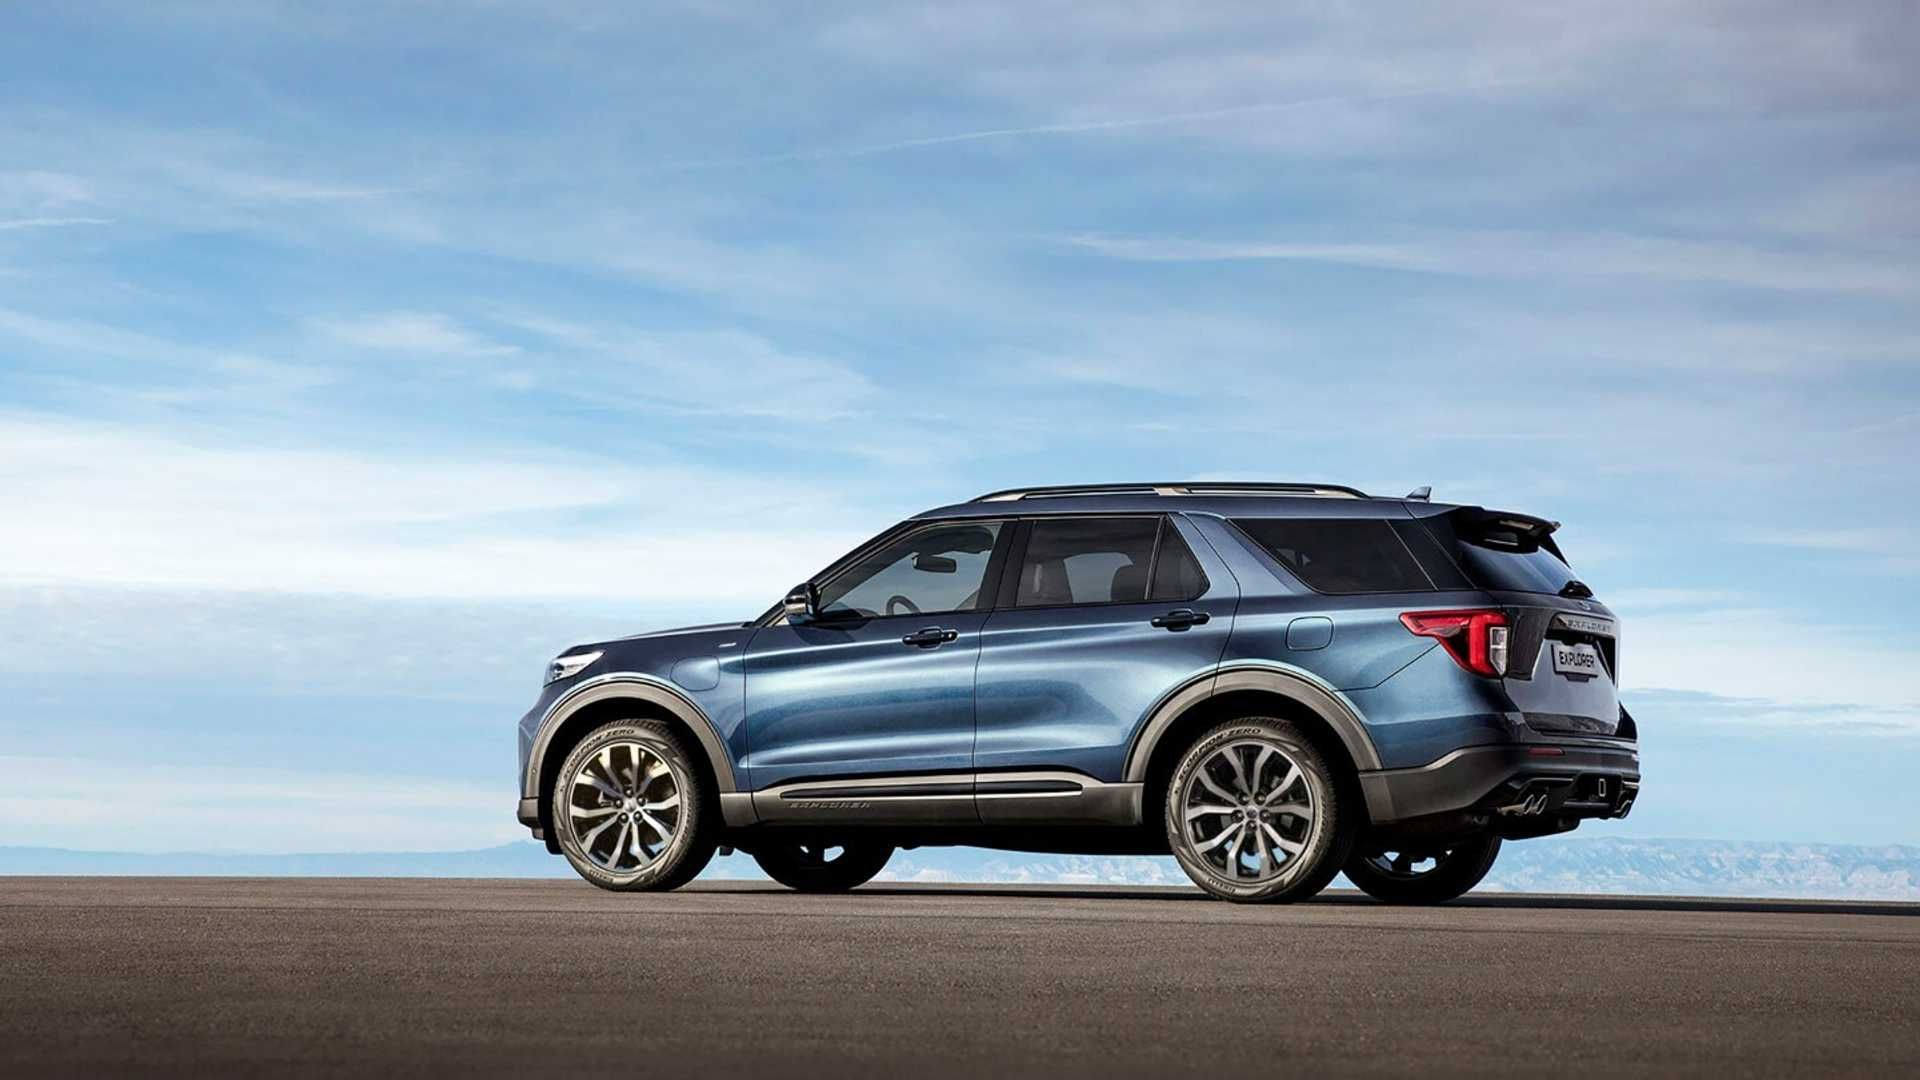 Ford Launches 7 Seat Explorer Phev With 26 Mile Wltp Ev Range In